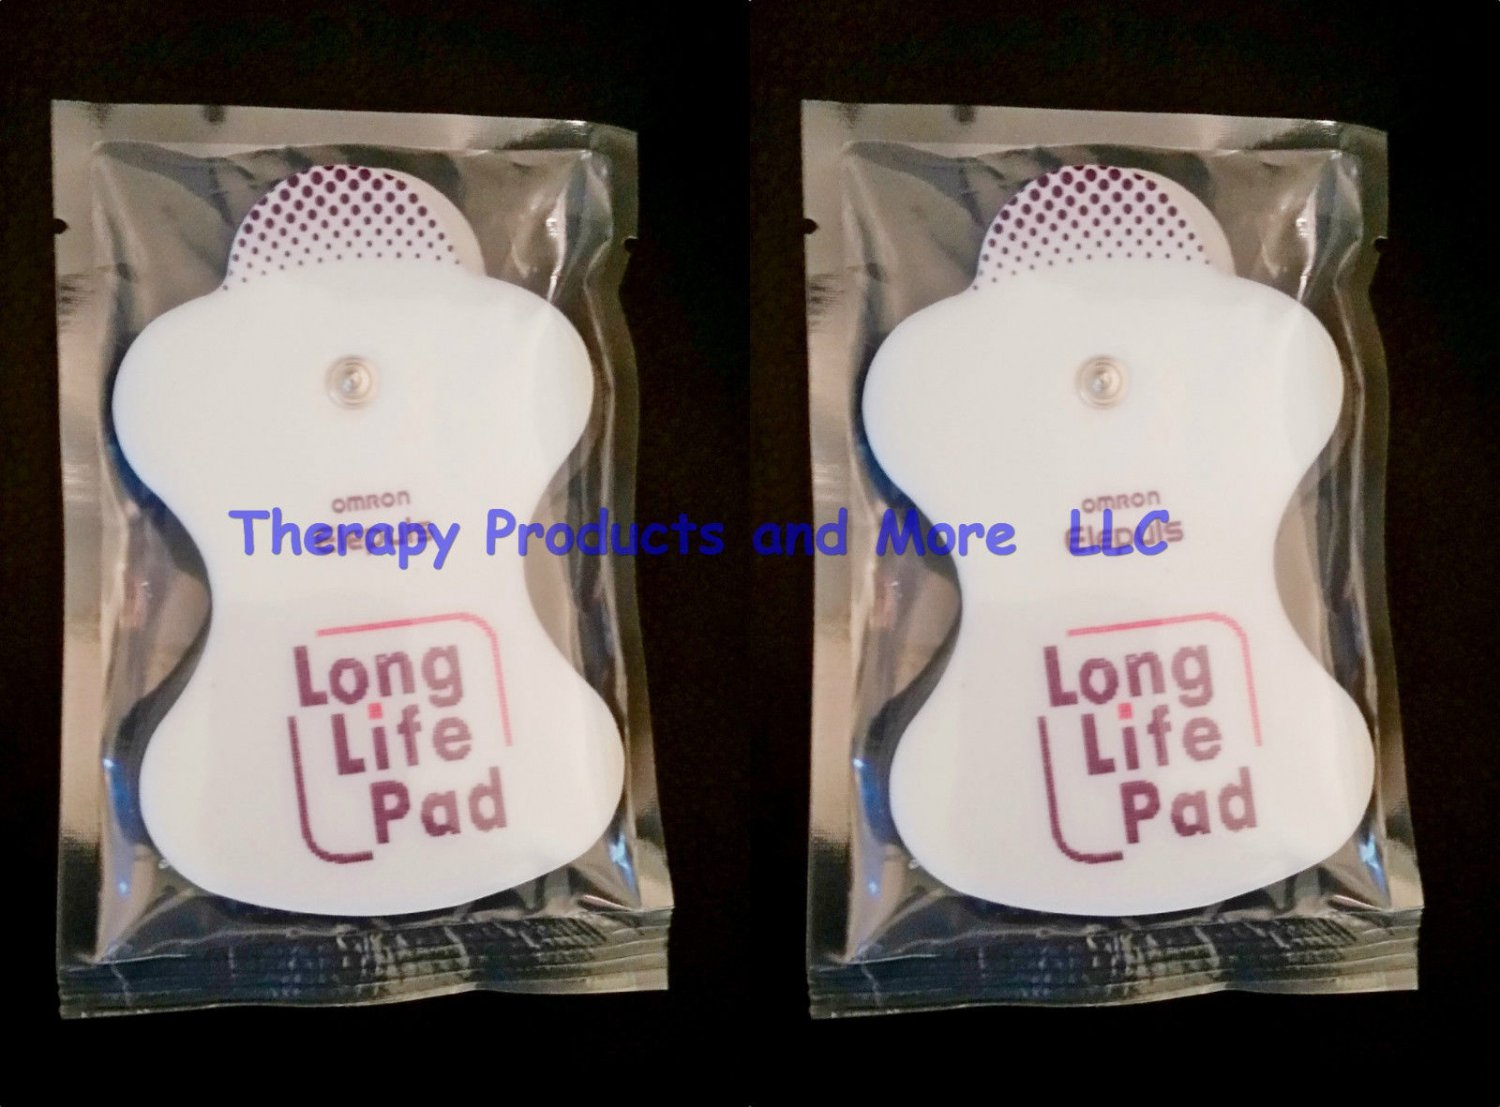 8 Electrode Replacement Pads for OMRON HV-F127 HV-F128 HV-F158 PM3030, 3031 3032